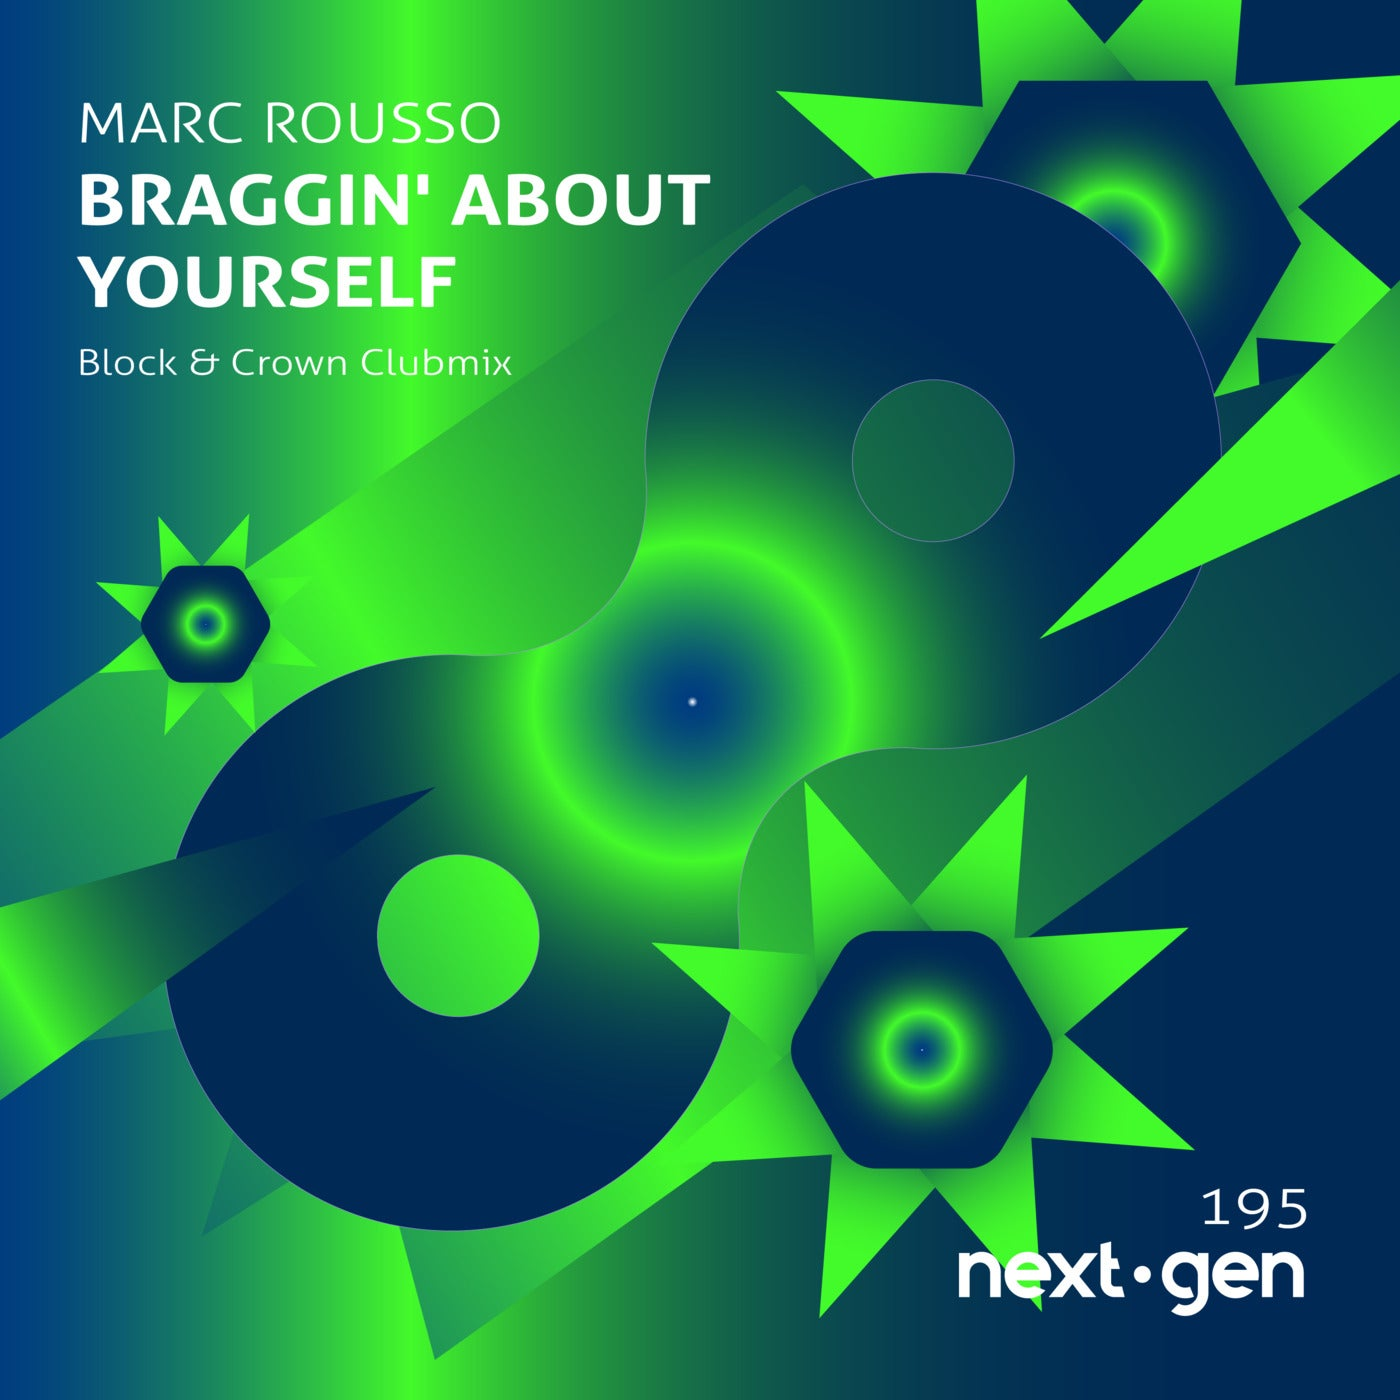 Braggin' About Yourself (Block & Crown Clubmix)